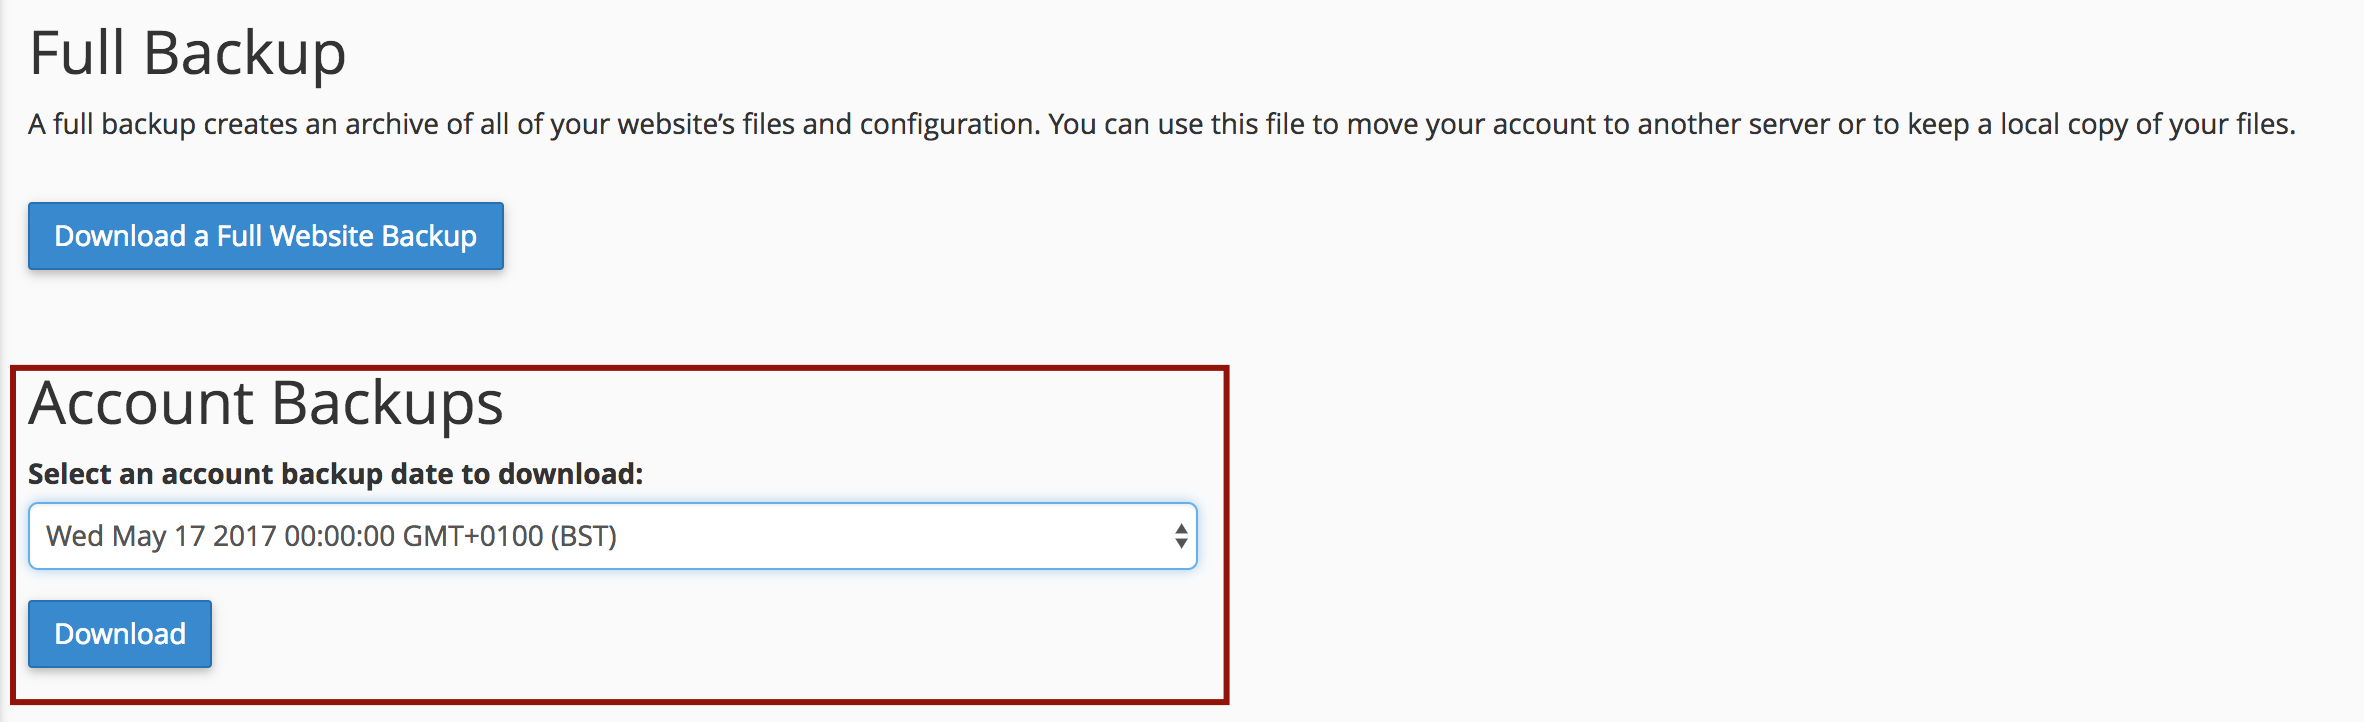 Account Backups - cPanel